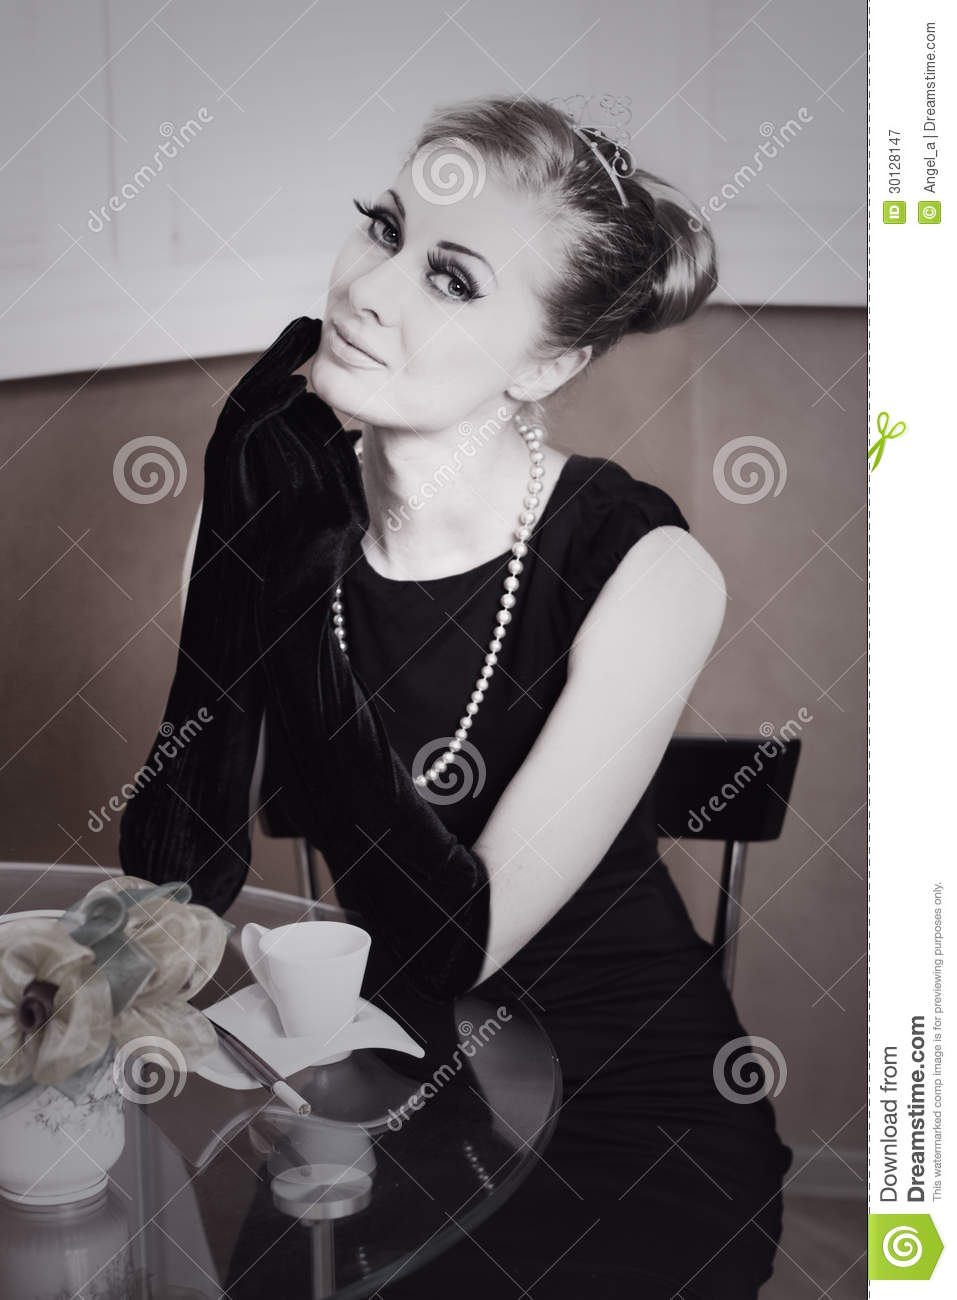 Black dress gloves - Retro Styling Woman In Black Dress And Gloves Royalty Free Stock Photography